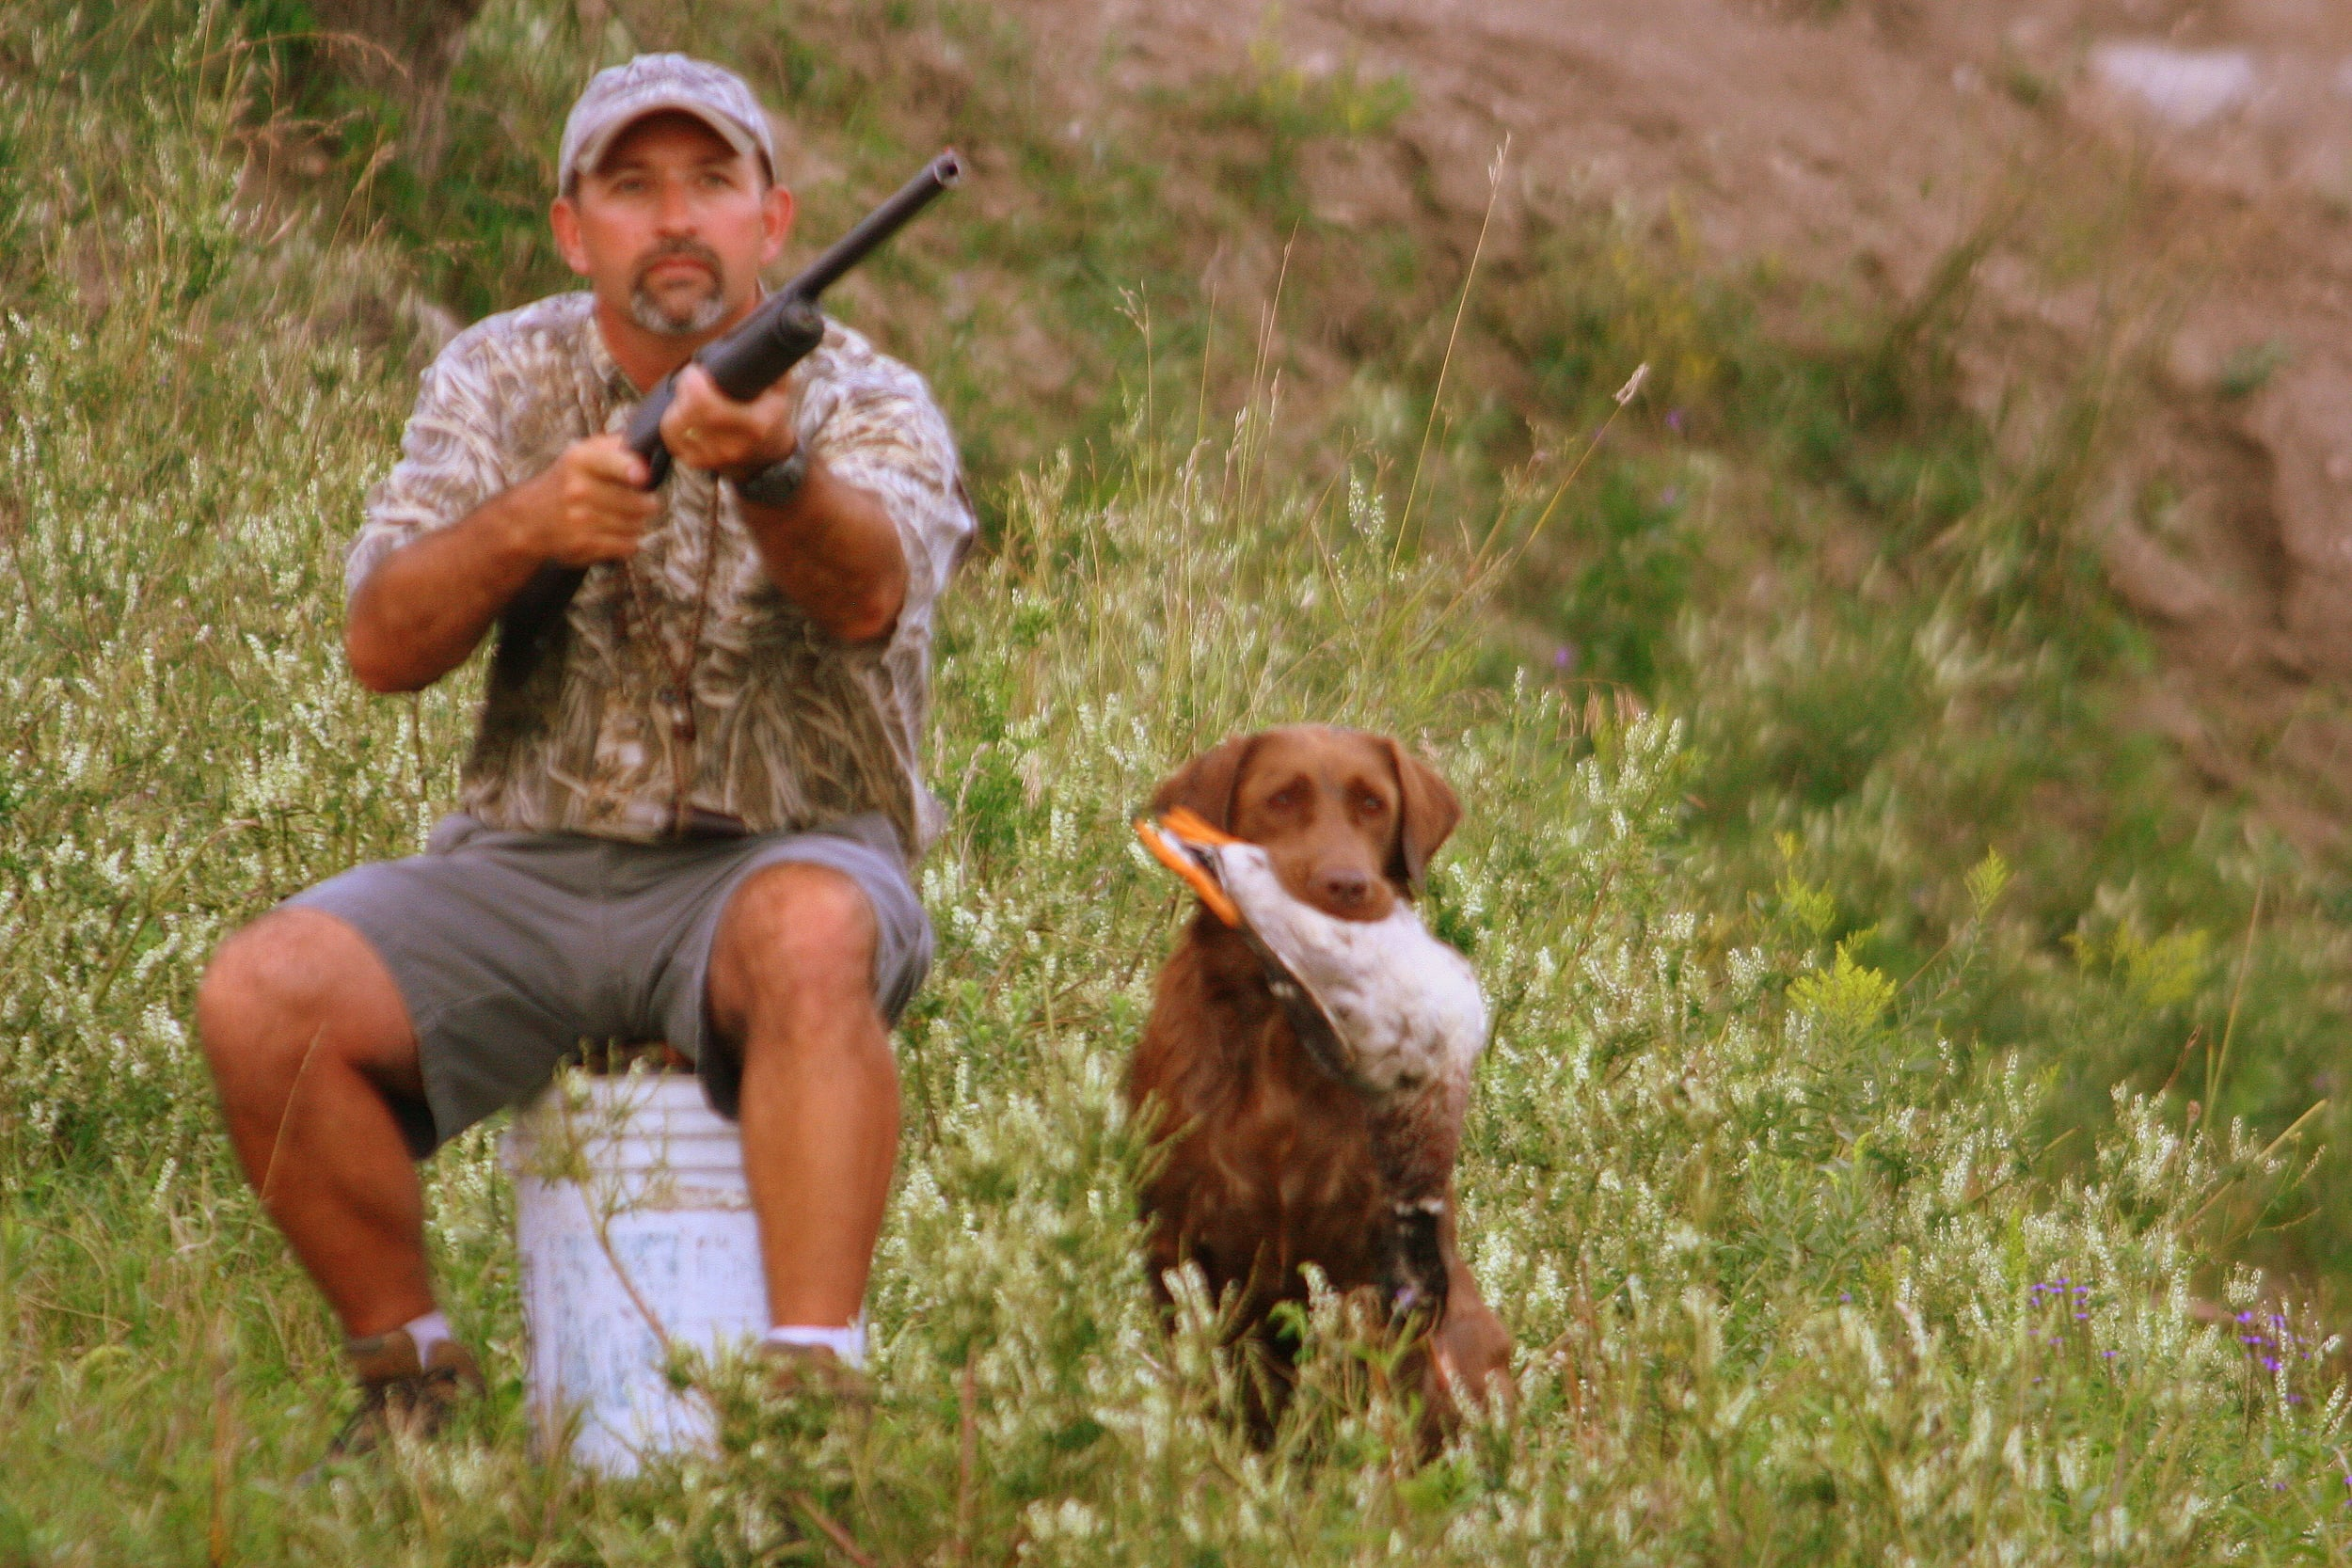 Wade and Tiger, a chocolate labrador retriever, watch a bird fall during a training session.